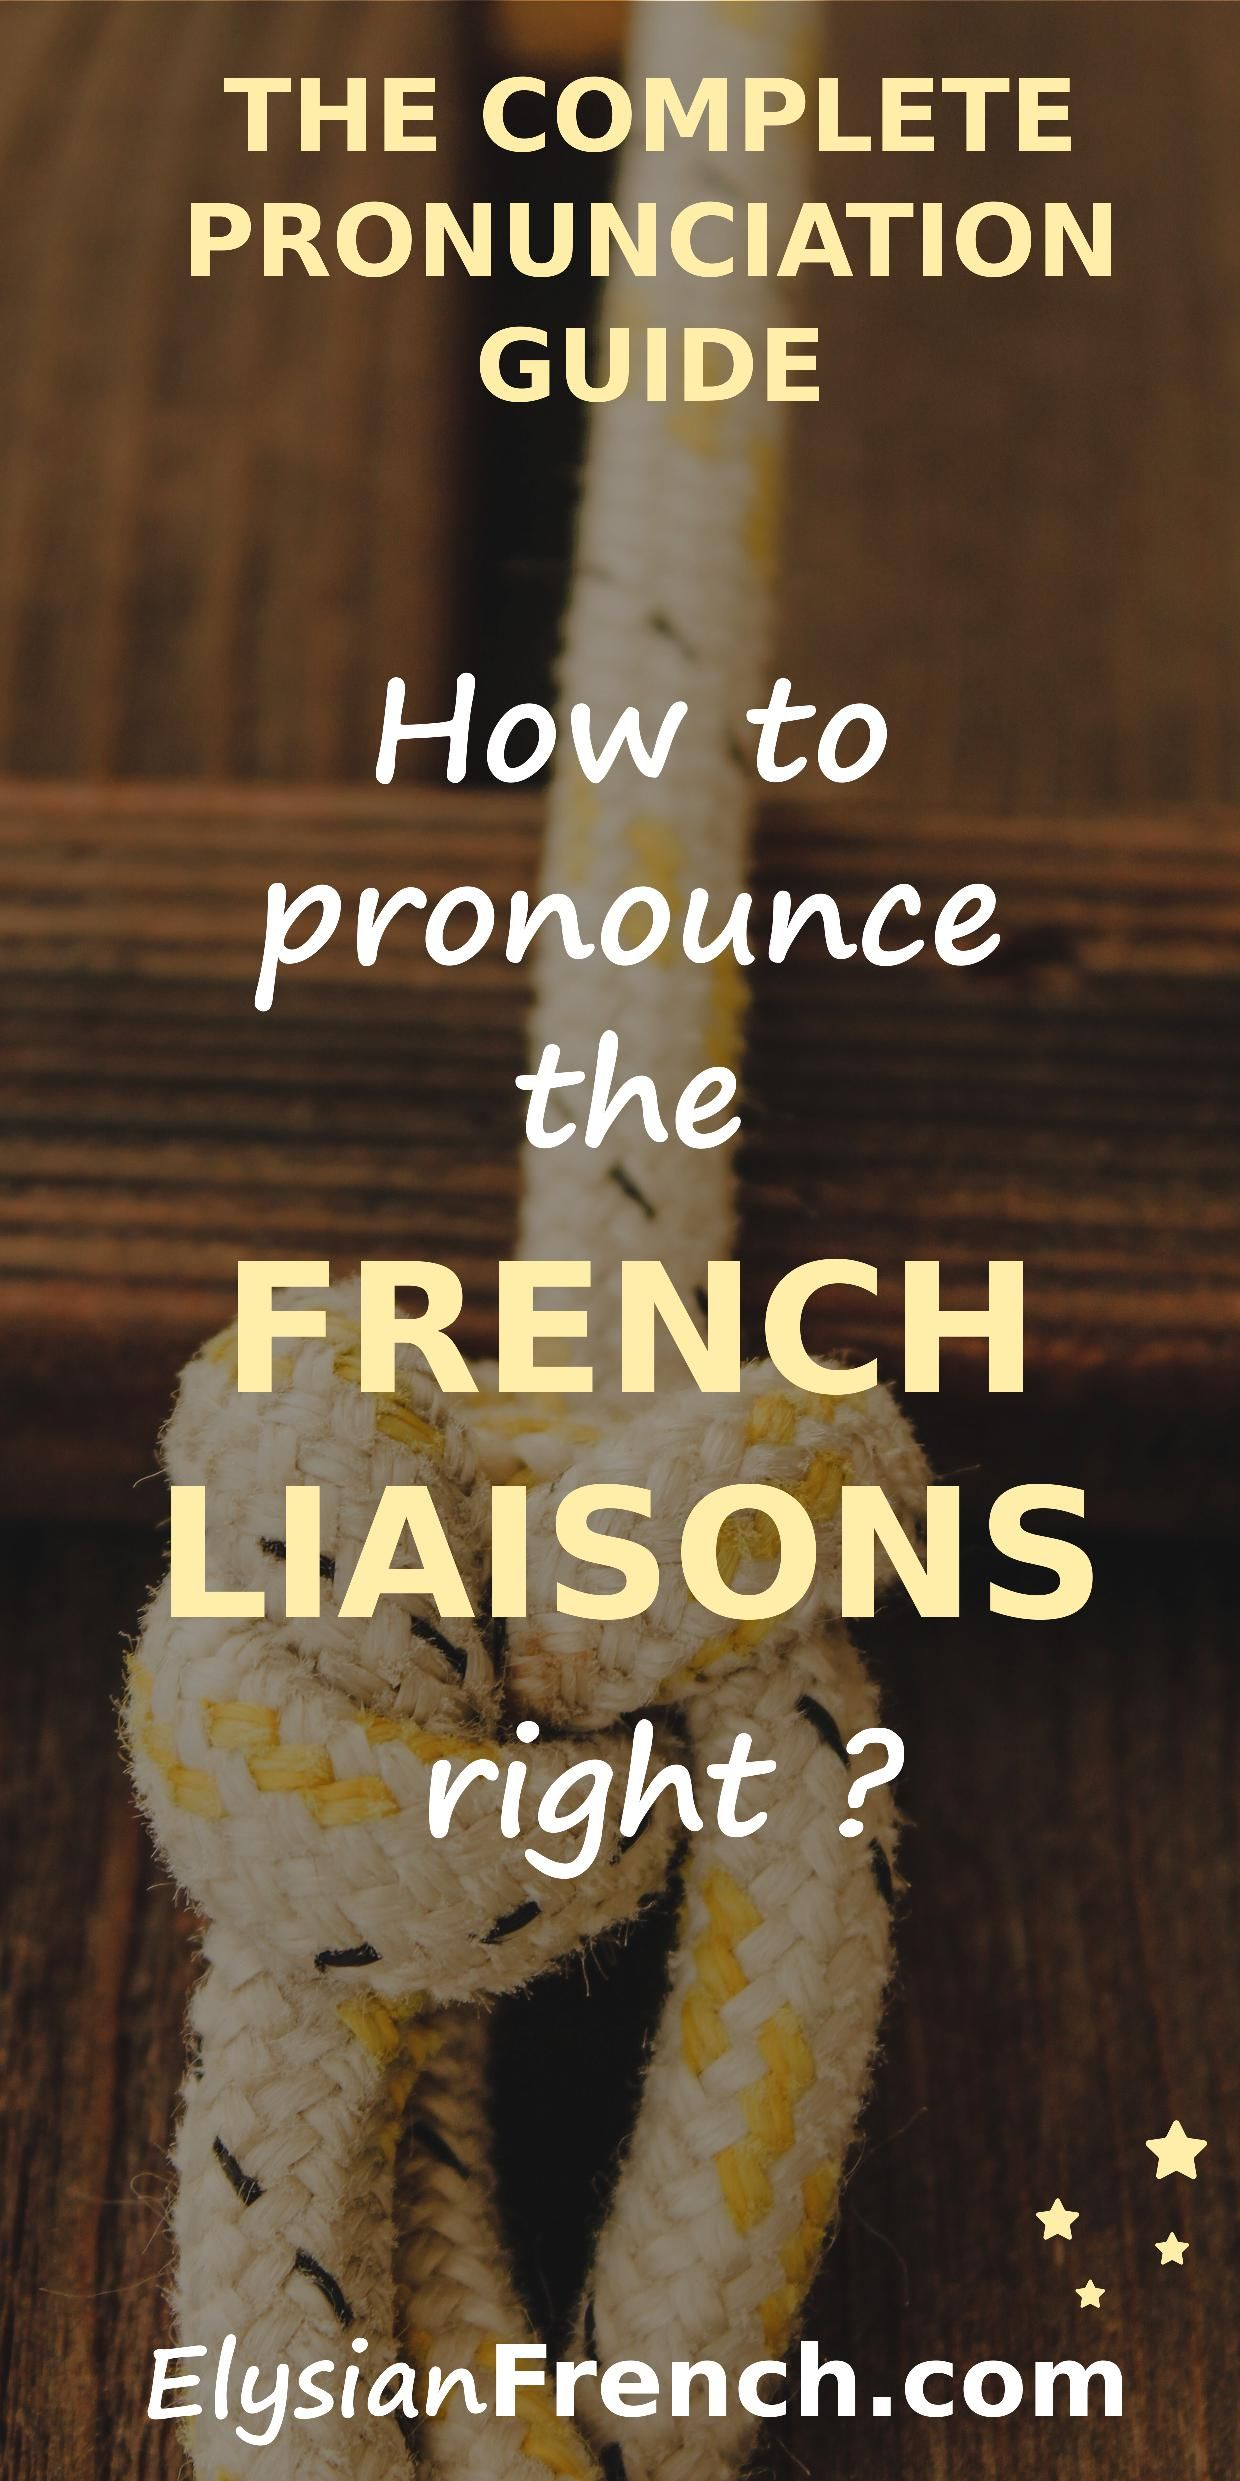 French Liaisons